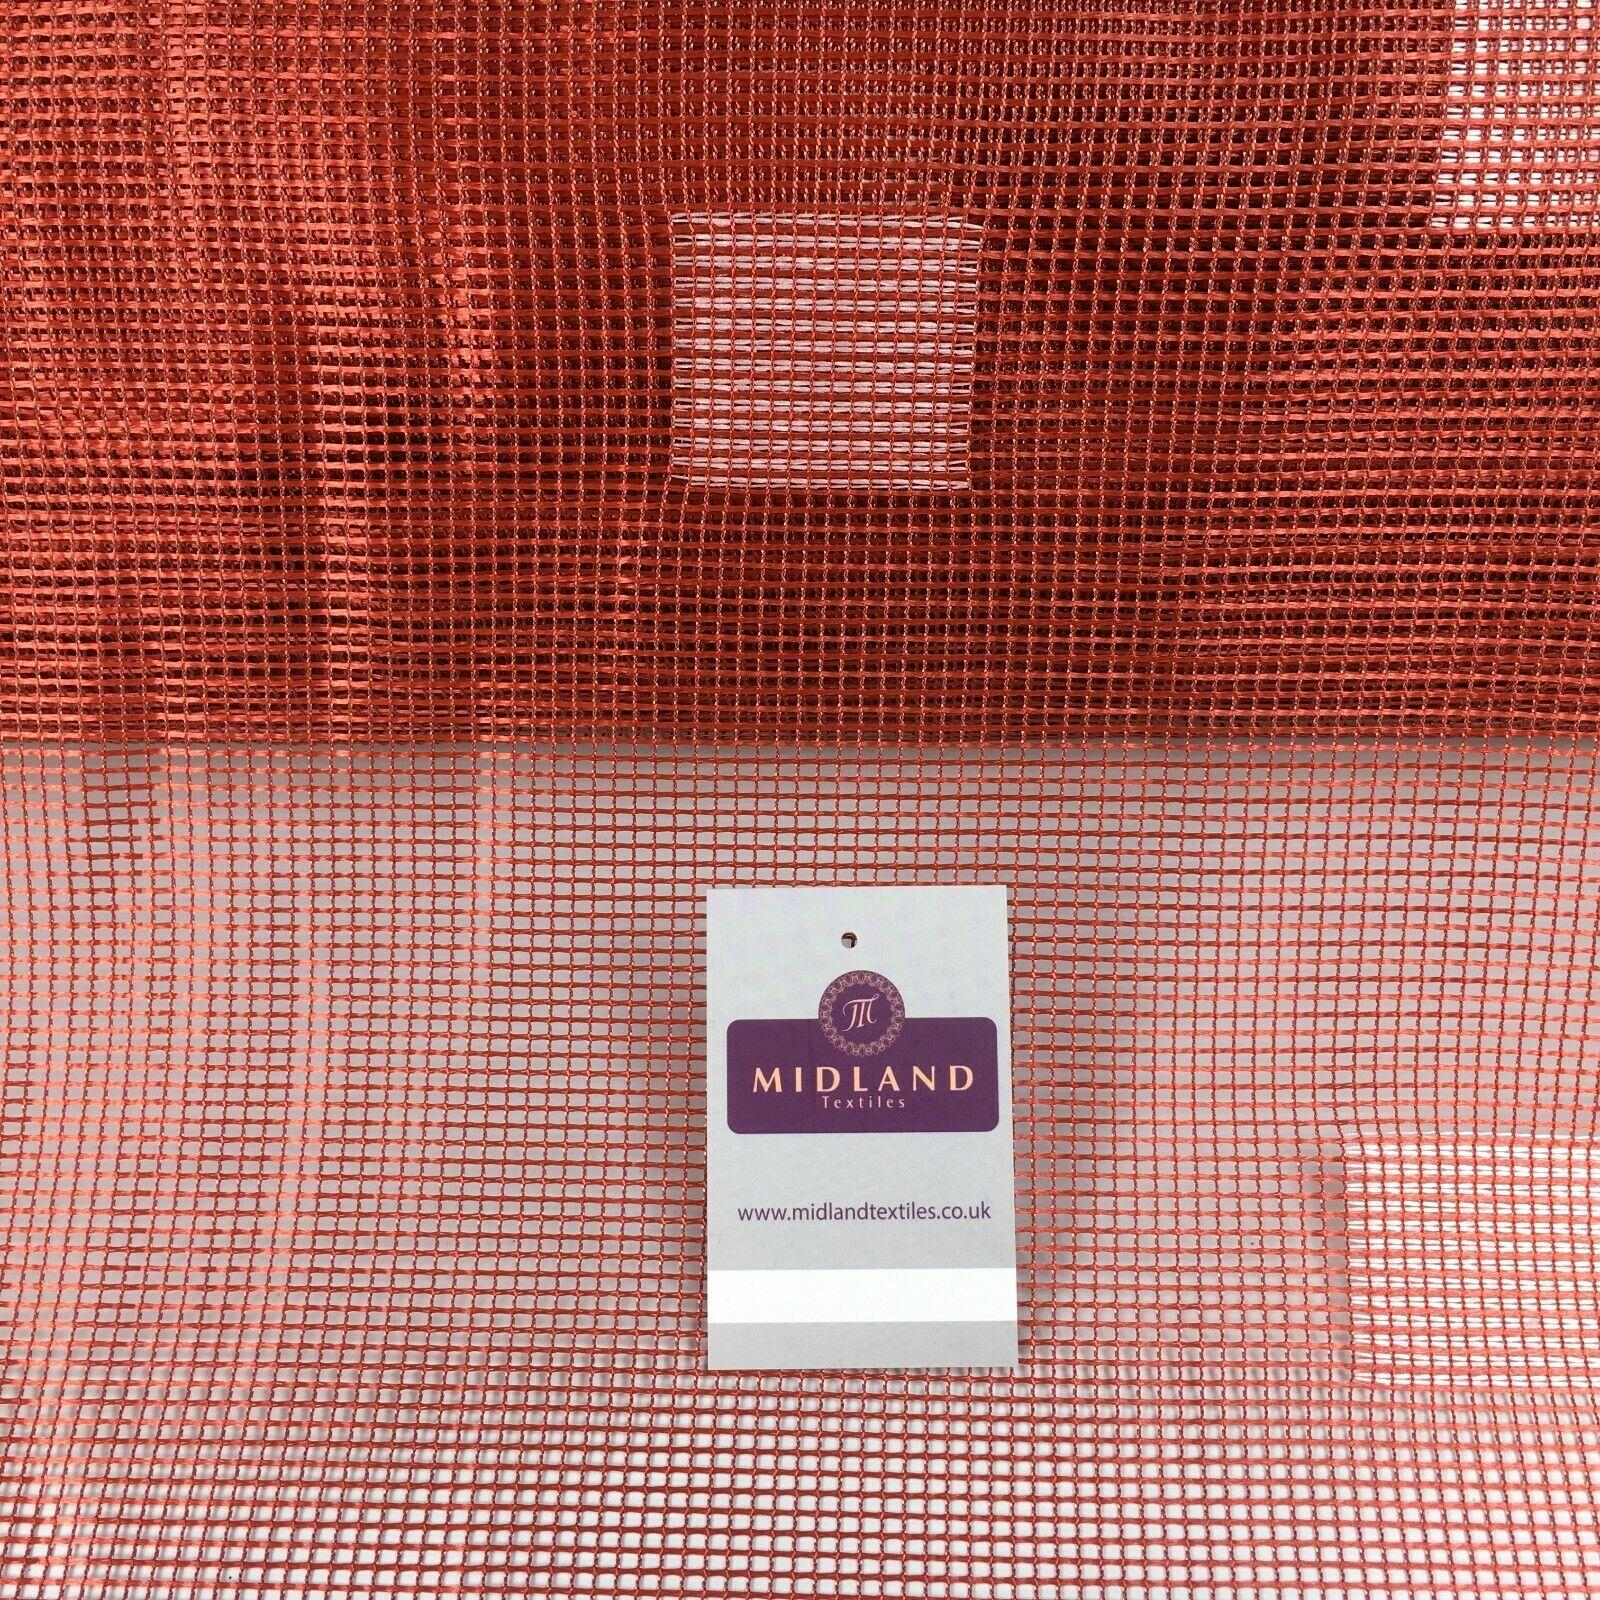 Terracotta mesh net curtain Fabric 150 cm M1208 Mtex